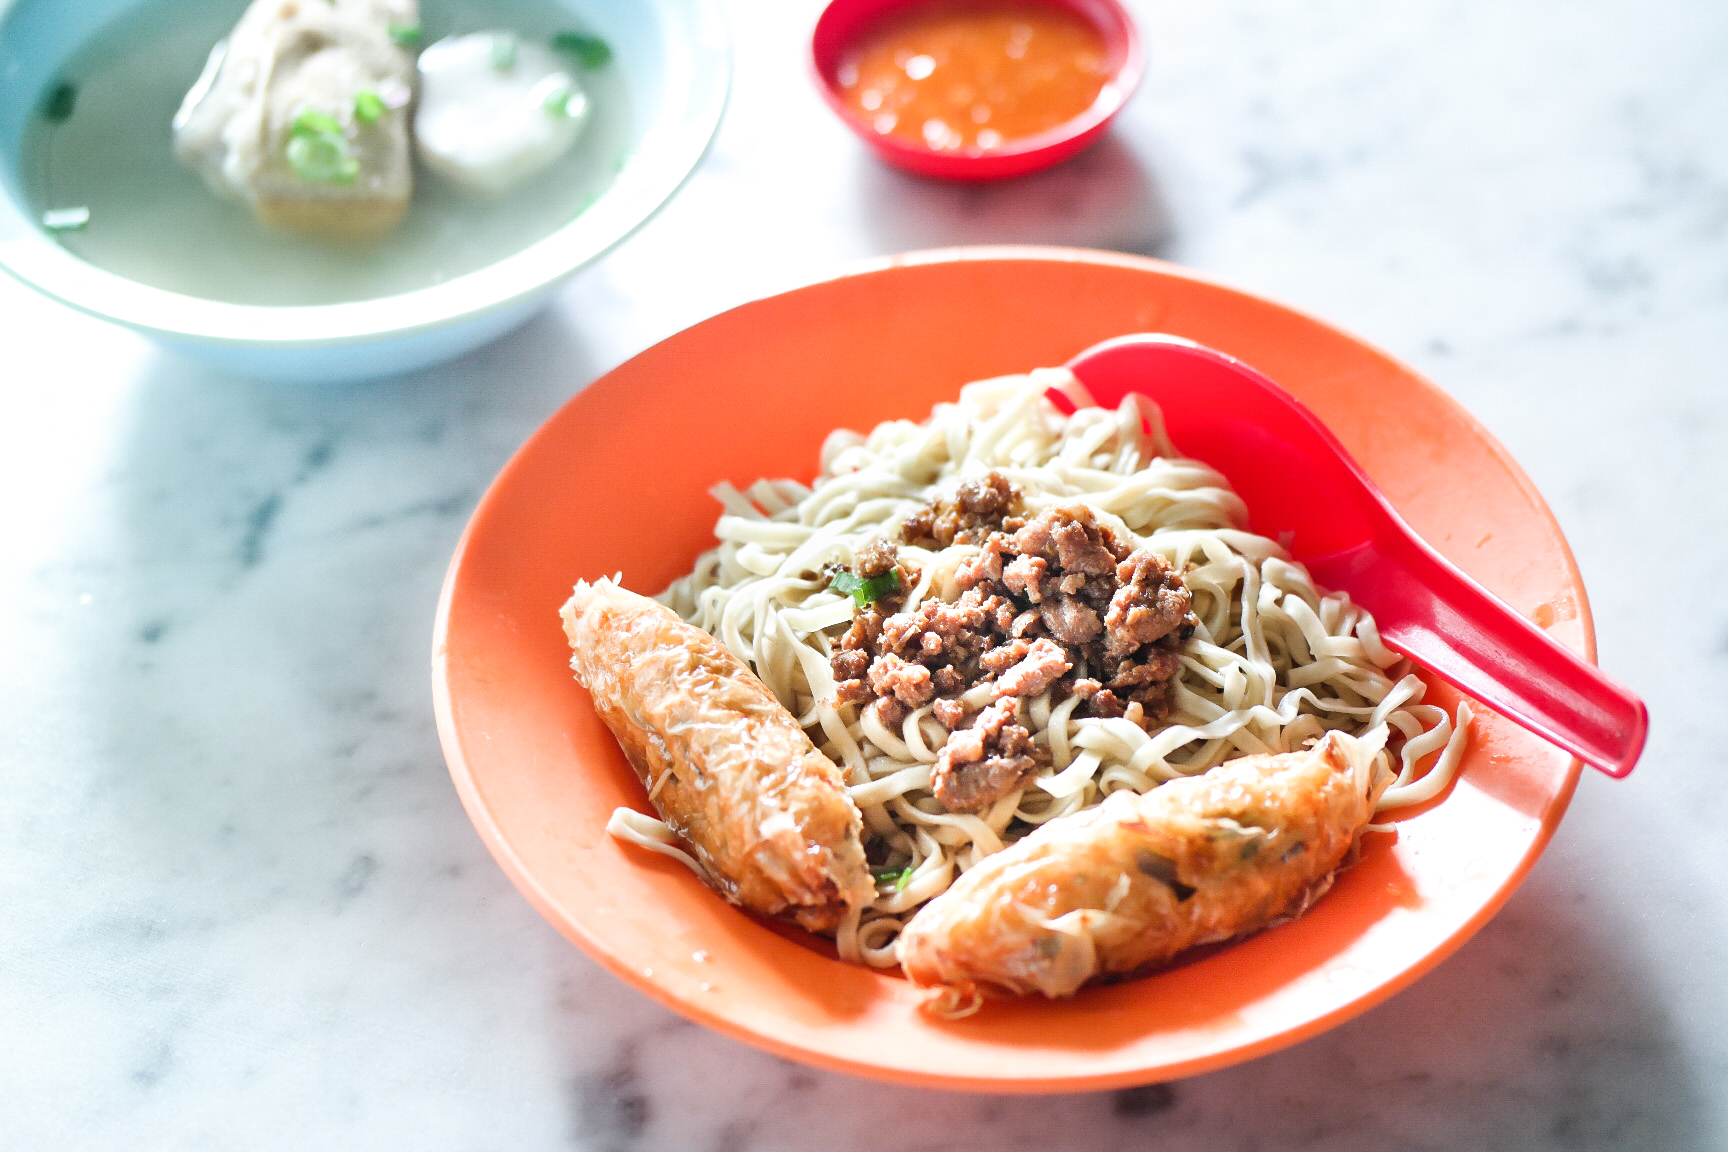 Ipoh Food Guide: Hakka Mee in a plate @ Restoran Cathay